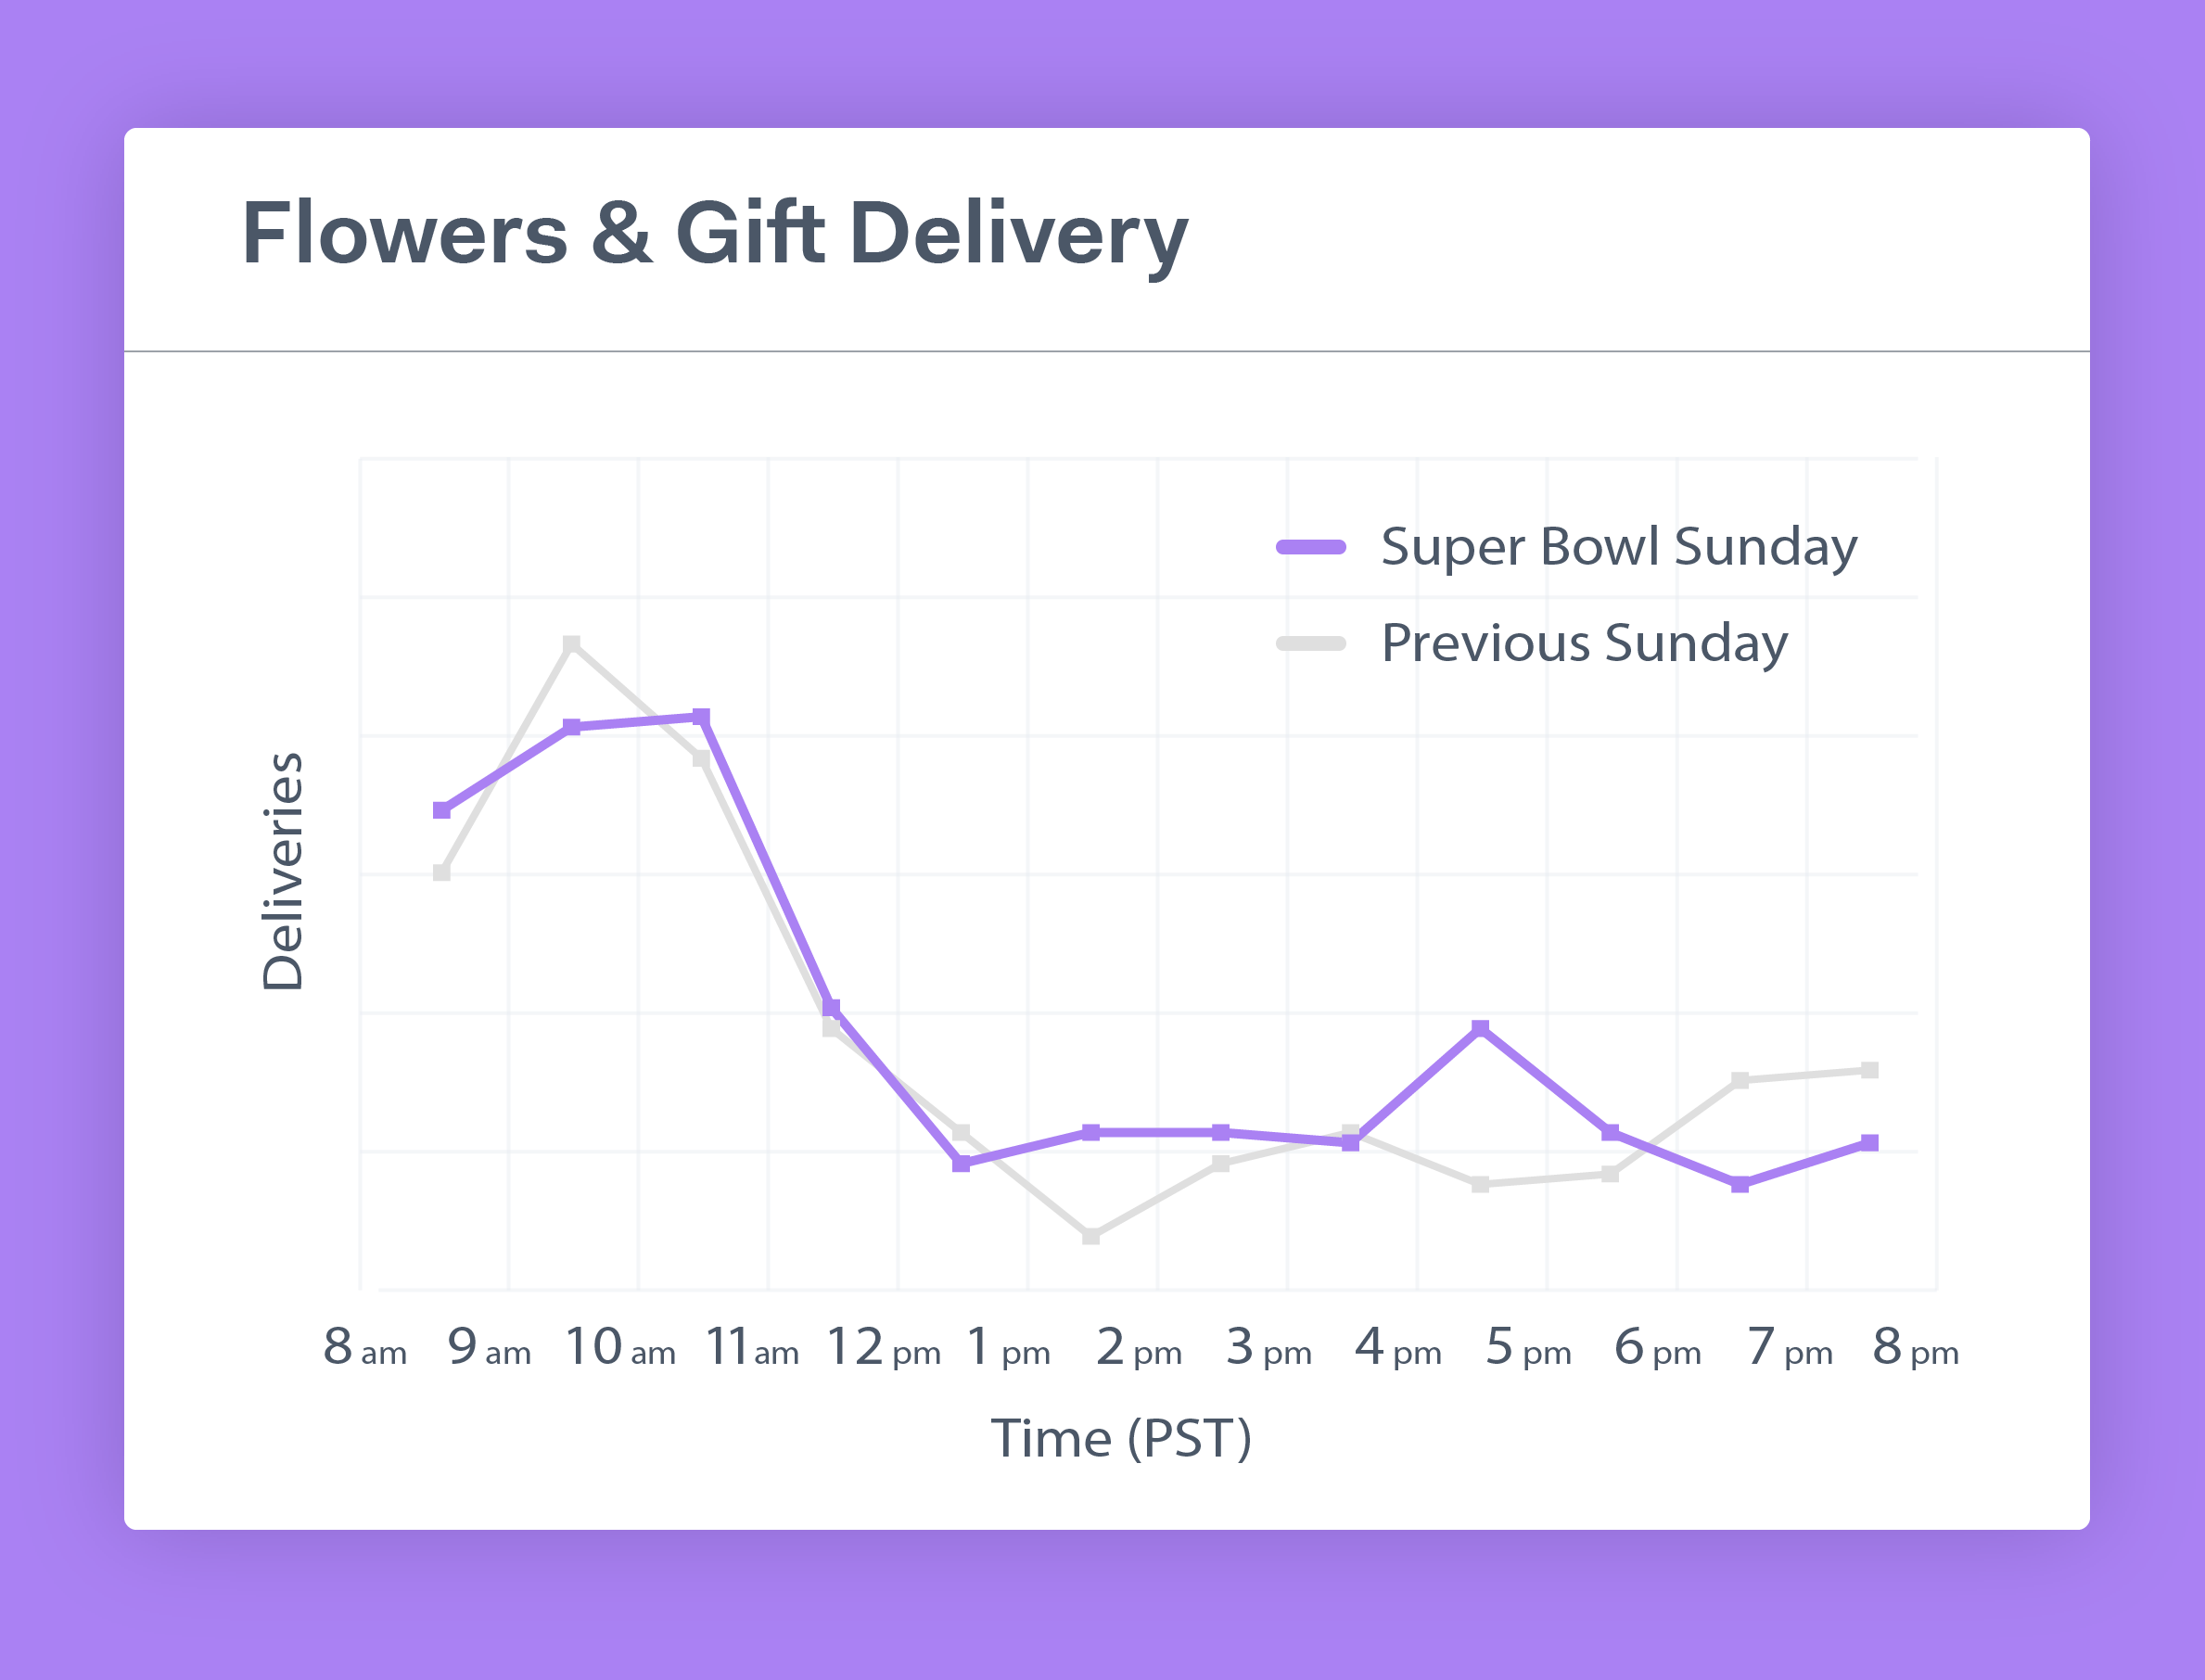 Flowers and gifts tracked similar, overall, to the Sunday before. There was a spike in the Fourth Quarter, perhaps caused by Tampa fans sending condolence flowers to their Kansas City friends as the game entered into a forgone conclusion and a seventh Super Bowl ring for Tom Brady